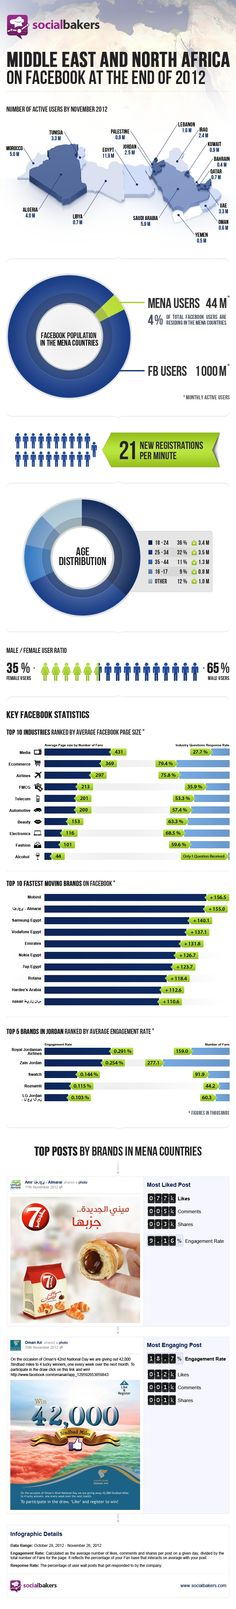 Facebook in the MENA region in 2012: Users, brands and industries